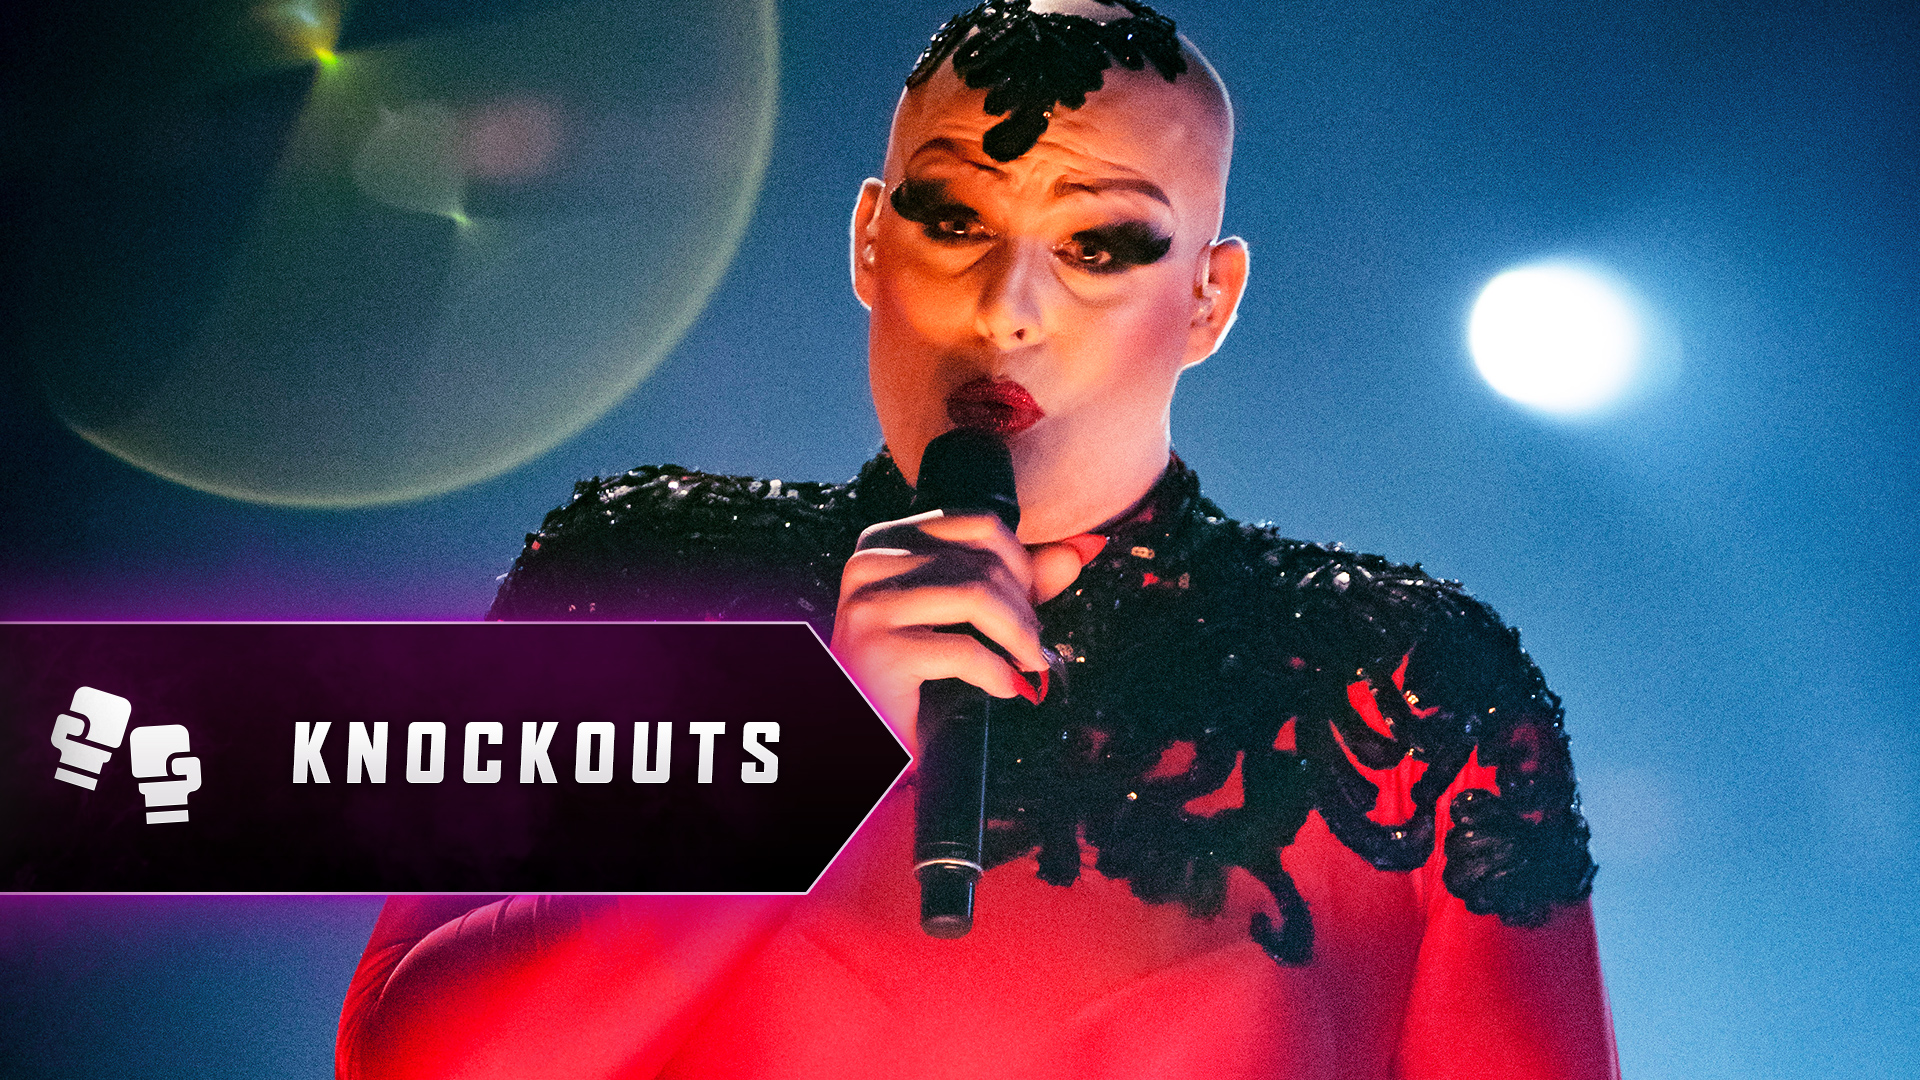 The Knockouts: Sellma Soul 'Bootylicious'